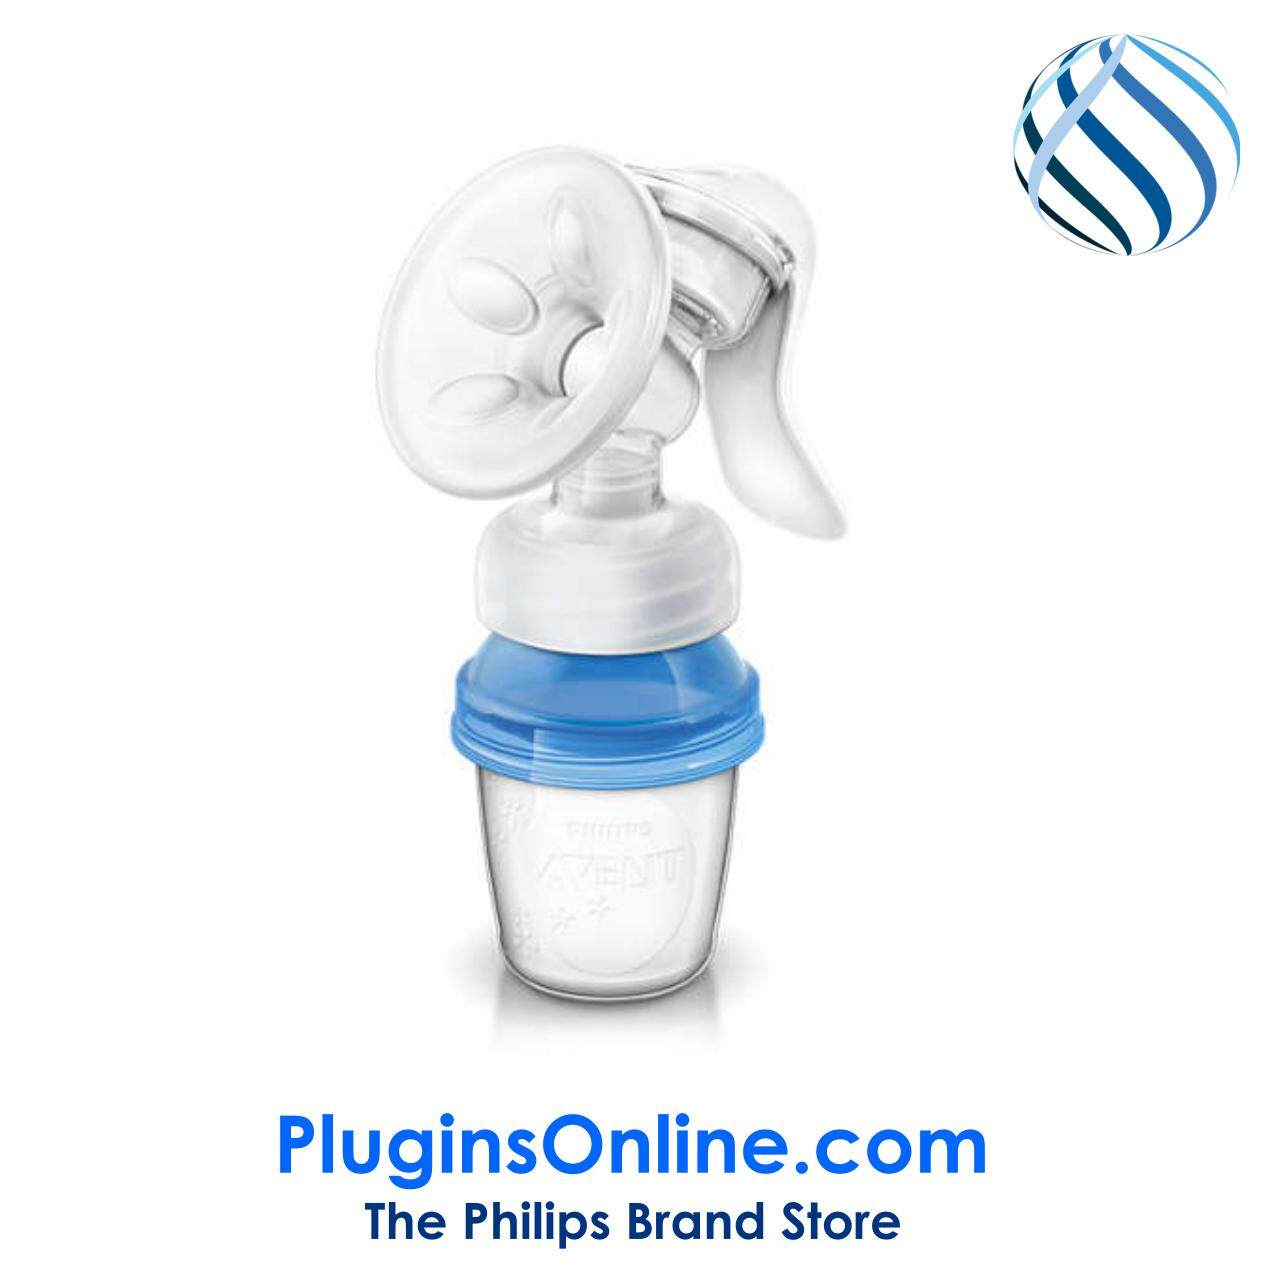 Philips Avent SCF330/13 Comfort Manual breast pump With via Cup (SCF330)